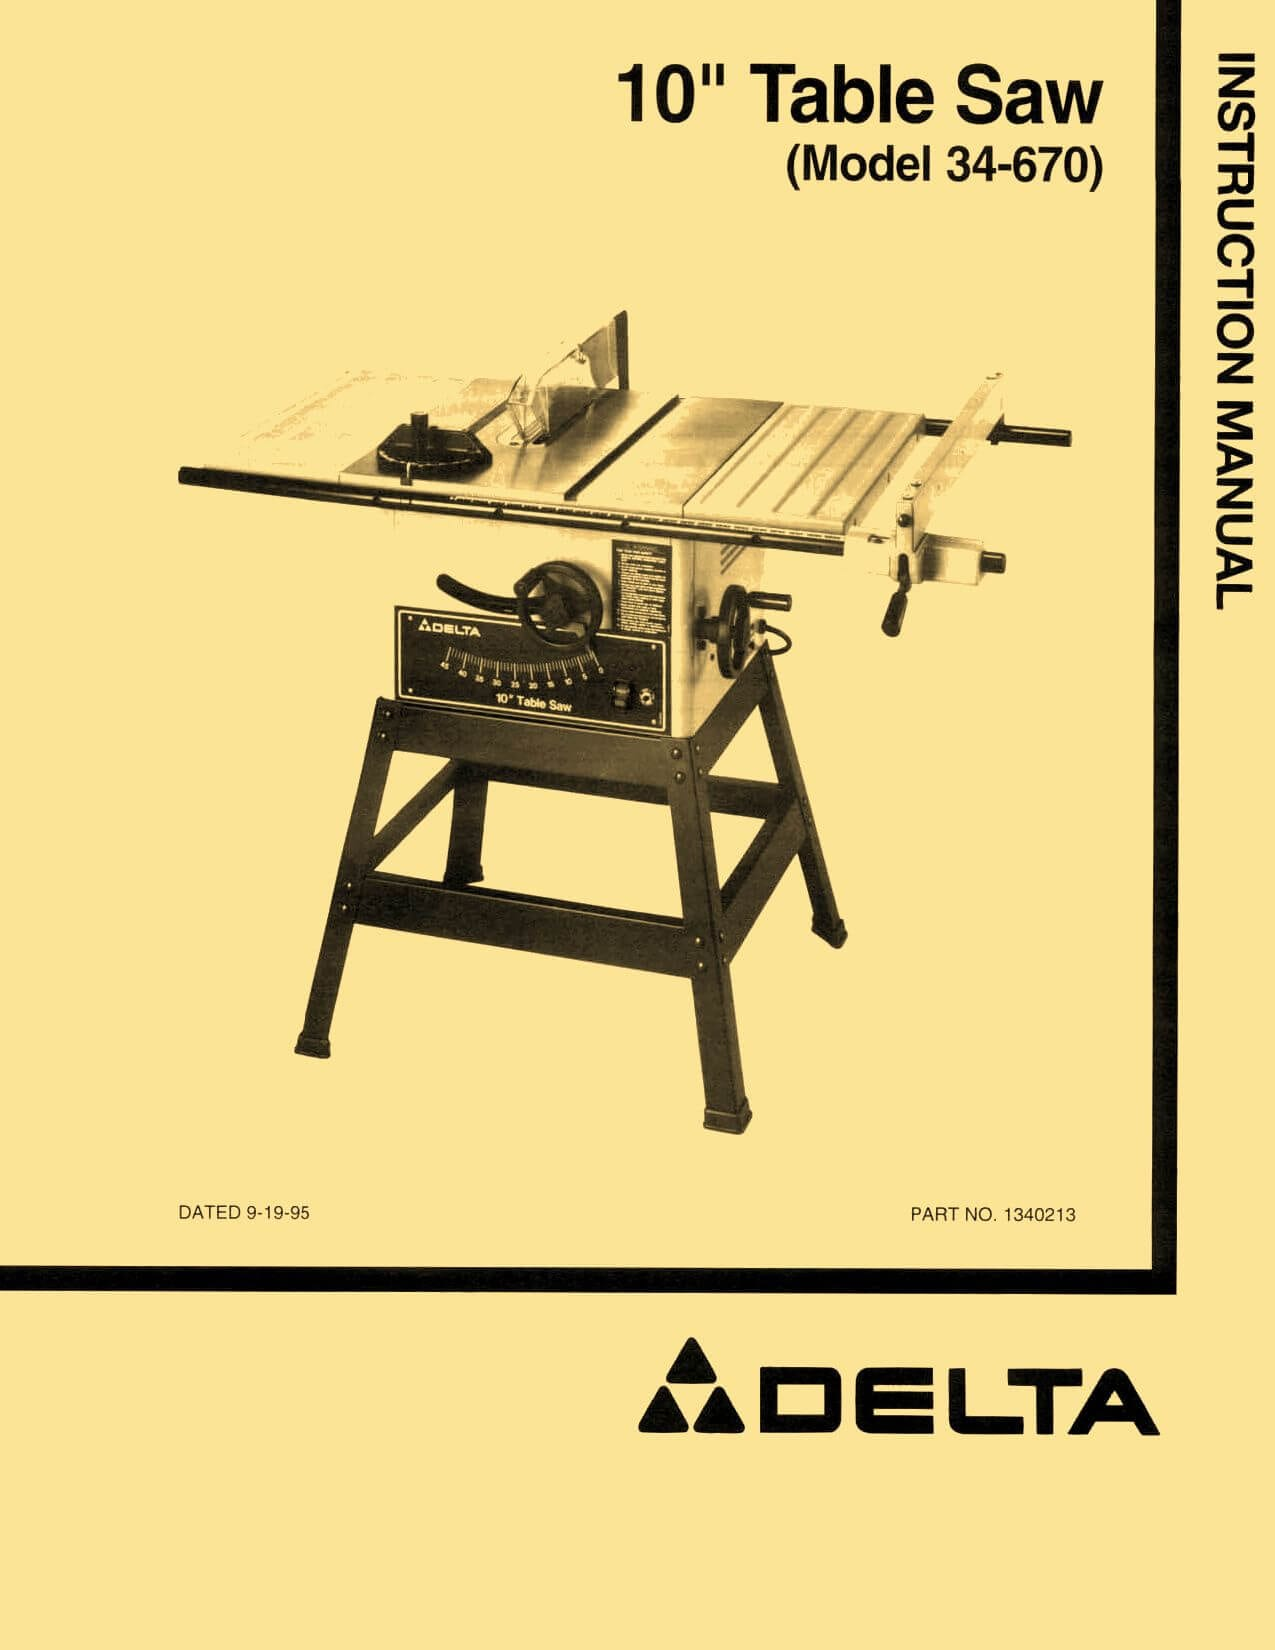 delta 34 670 10 motorized table saw instructions parts manual rh ozarktoolmanuals com delta table saw manuals model 34-426 delta table saw manual 36-600